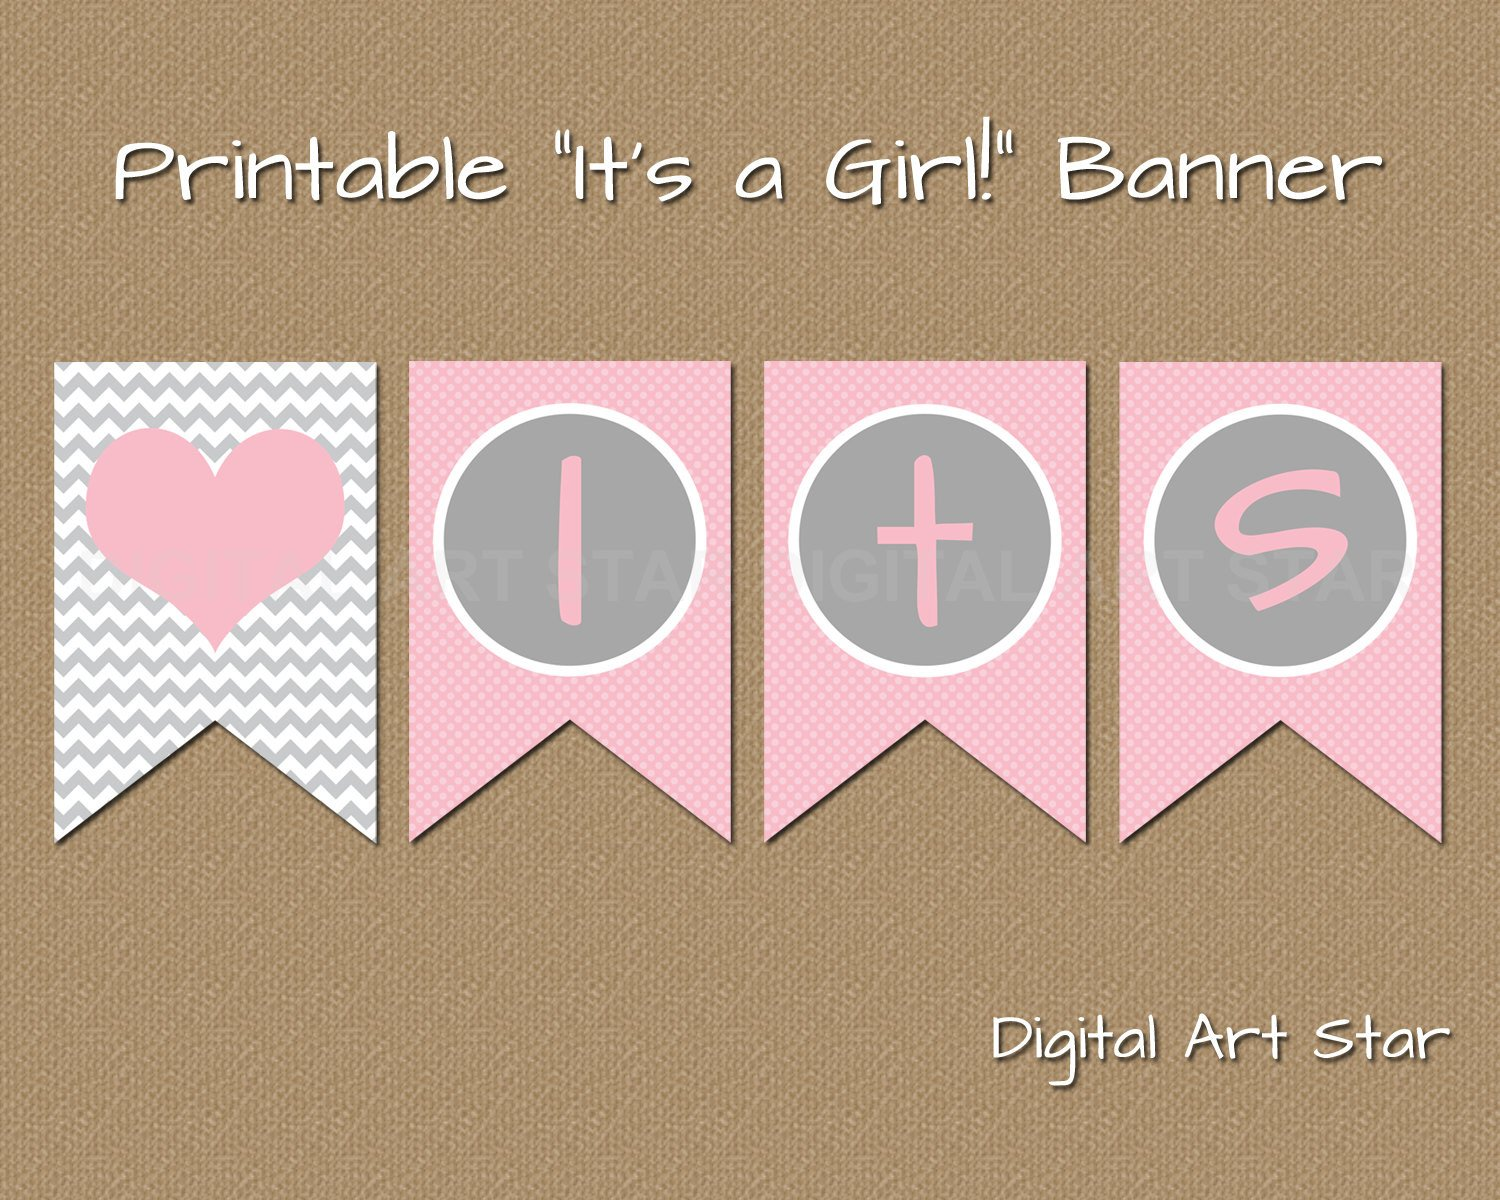 Baby Shower Banner Printable Printable Baby Shower Banner Diy Its A Girl Banner Pink